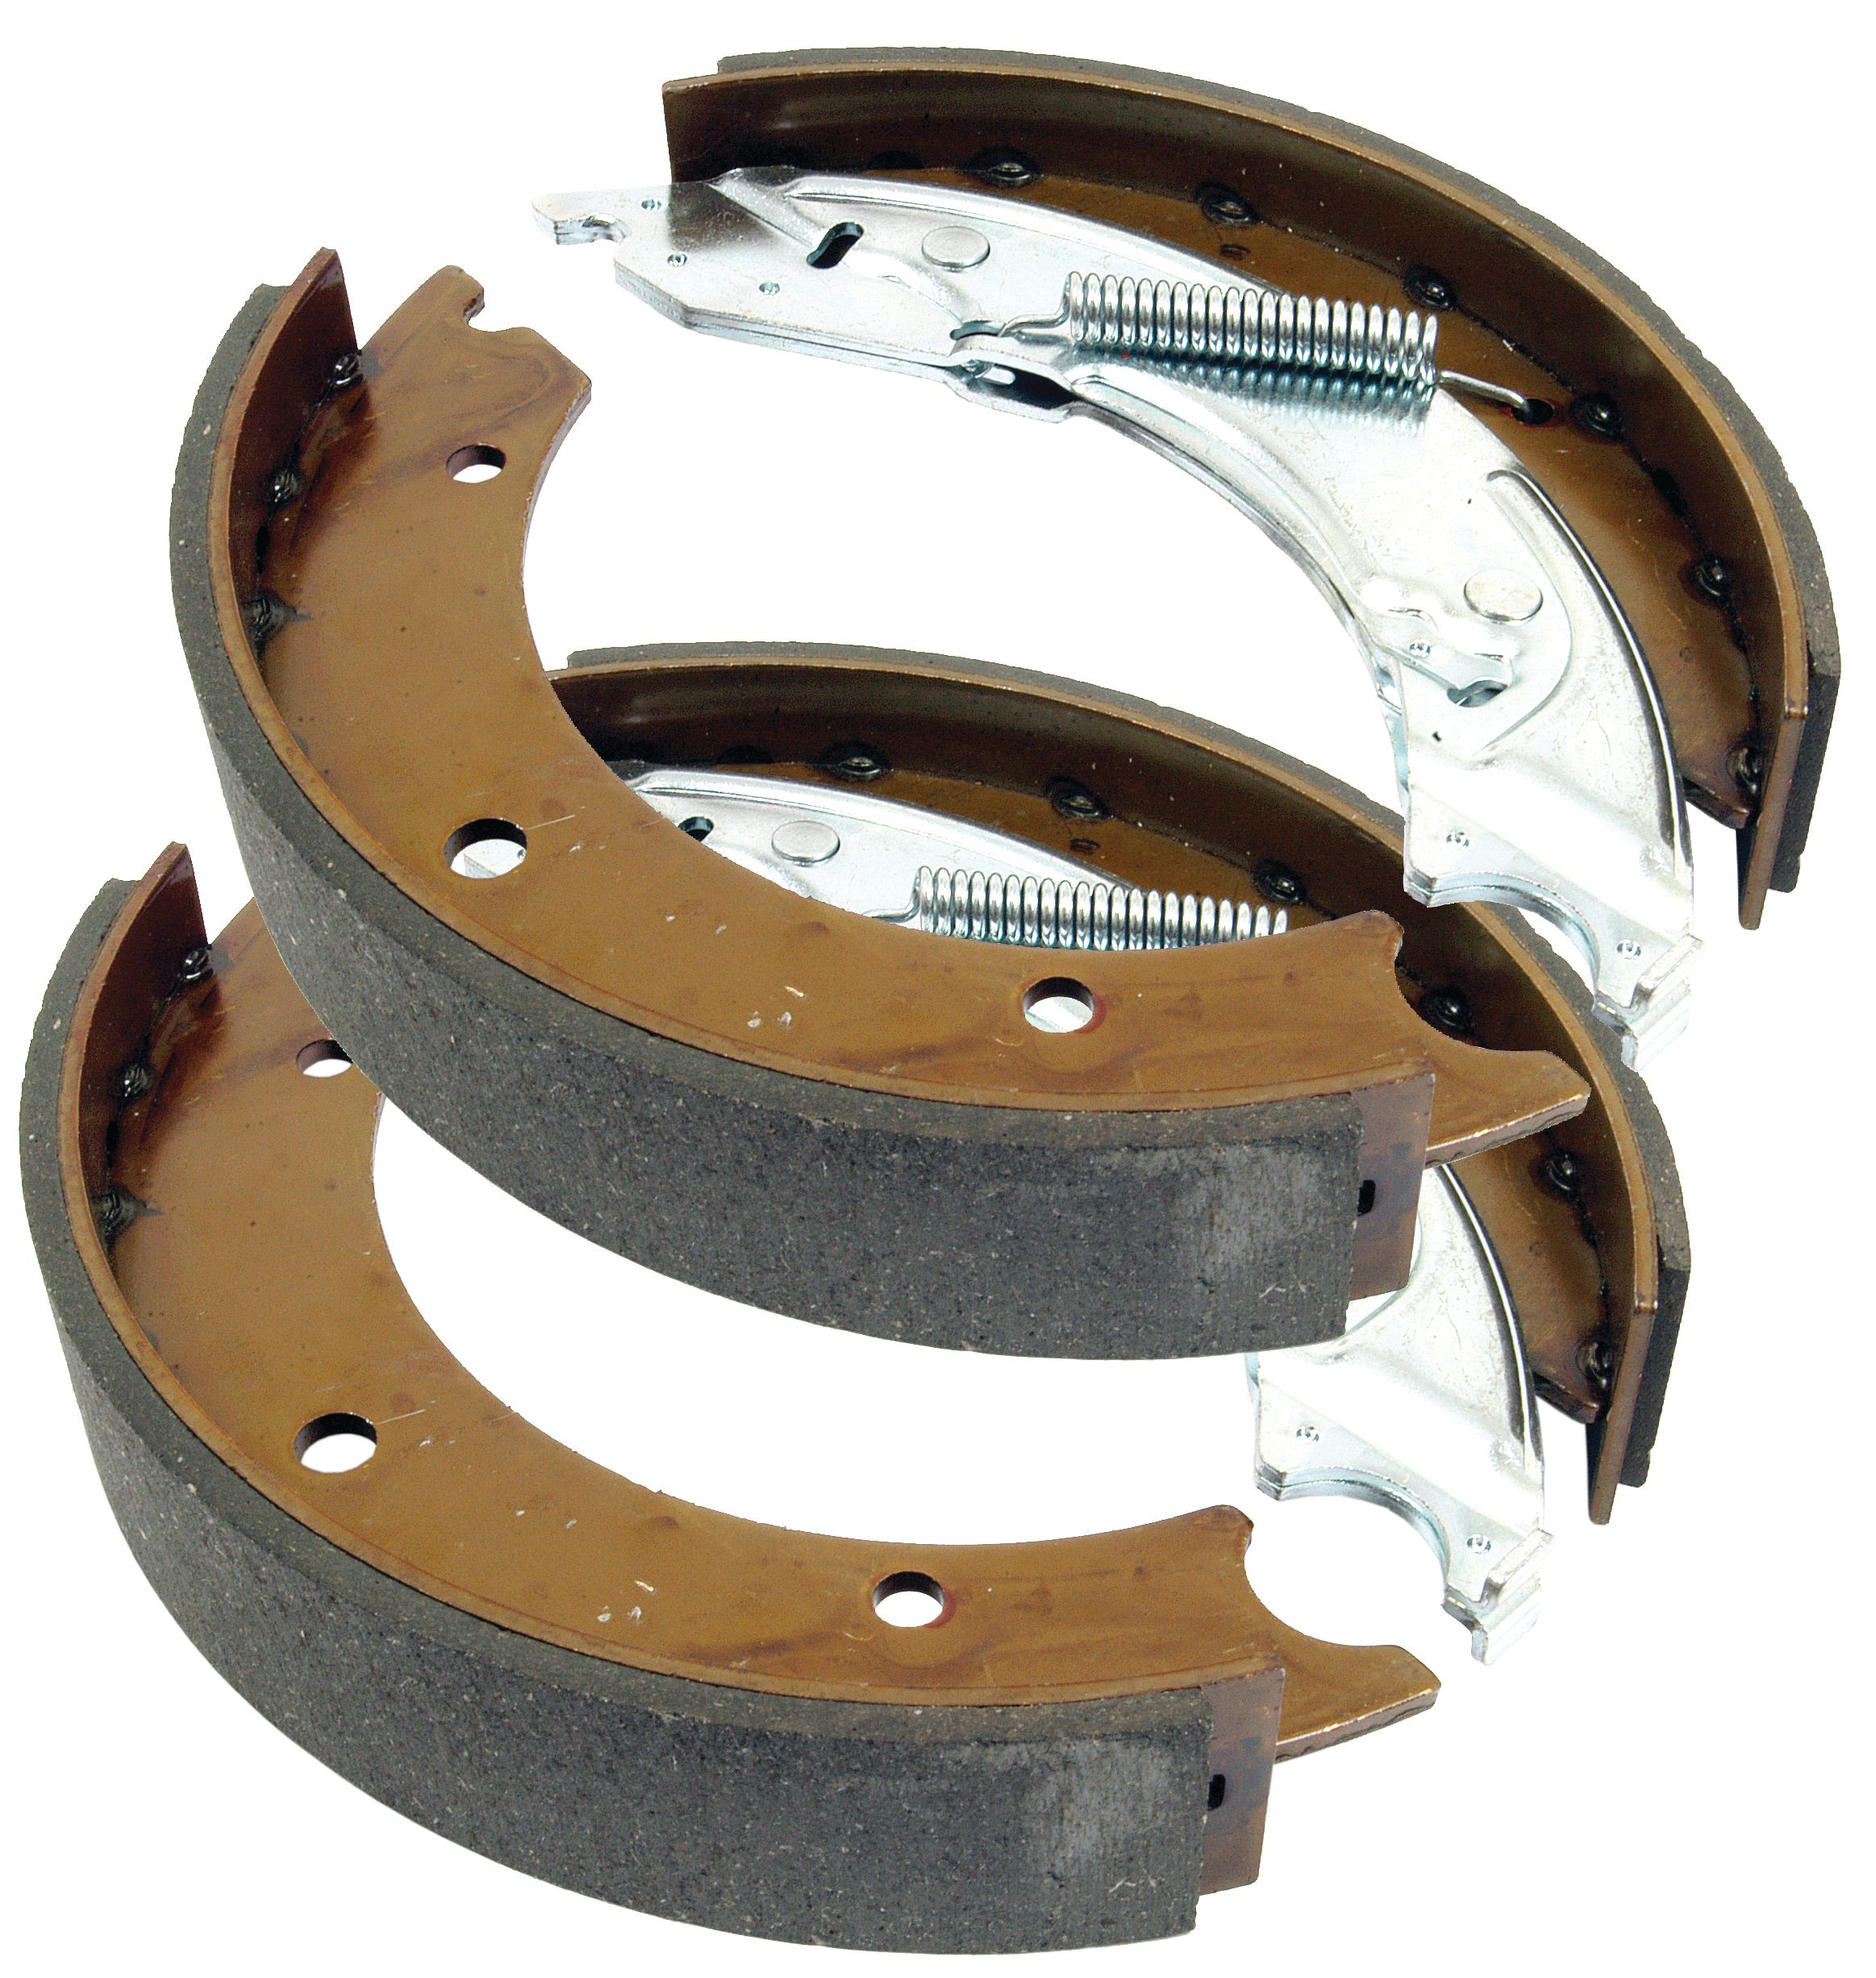 IFOR WILLIAMS BRAKE SHOE SET (250X40) 23216